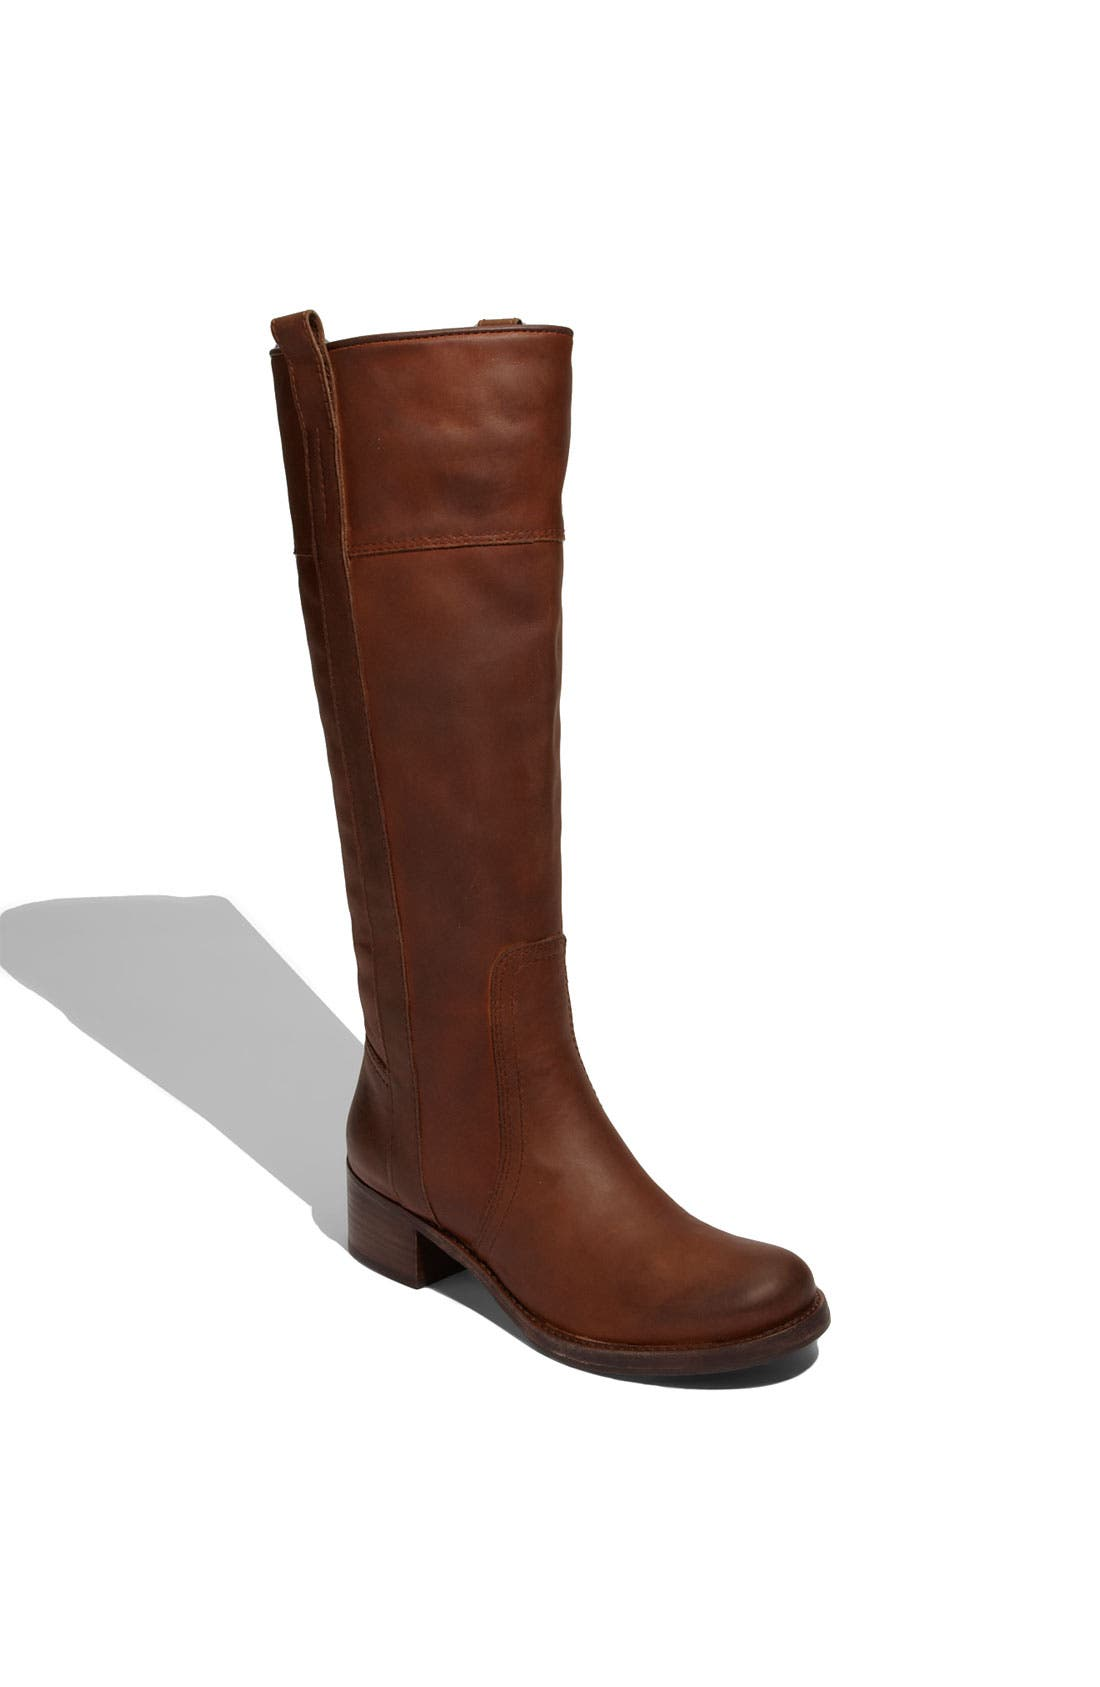 Main Image - Halogen® 'Saffron' Tall Riding Boot